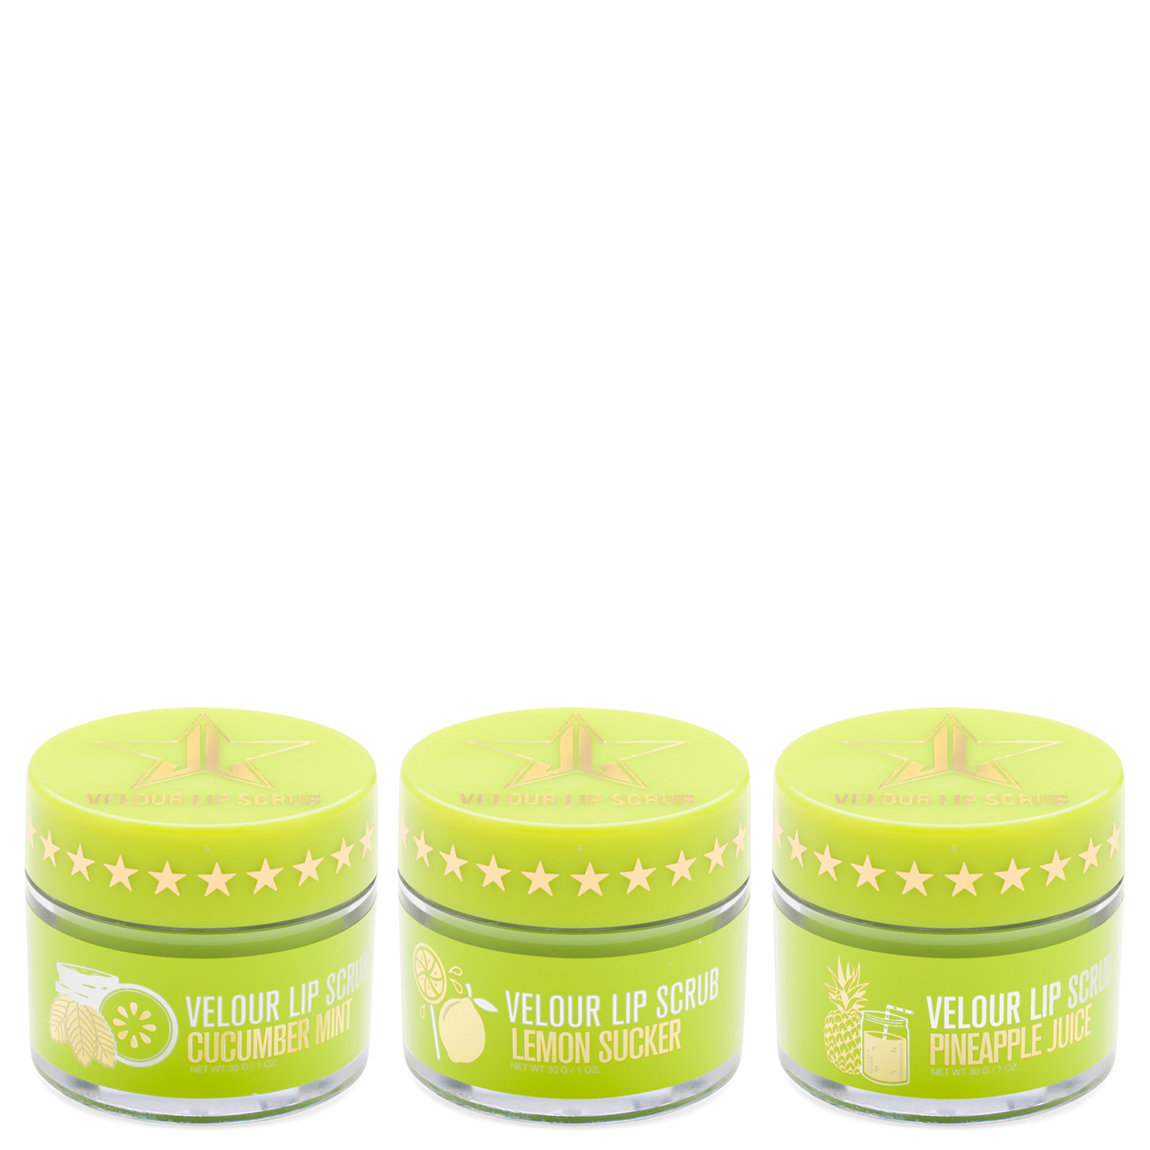 Jeffree Star Cosmetics Jawbreaker Velour Lip Scrub Bundle product smear.